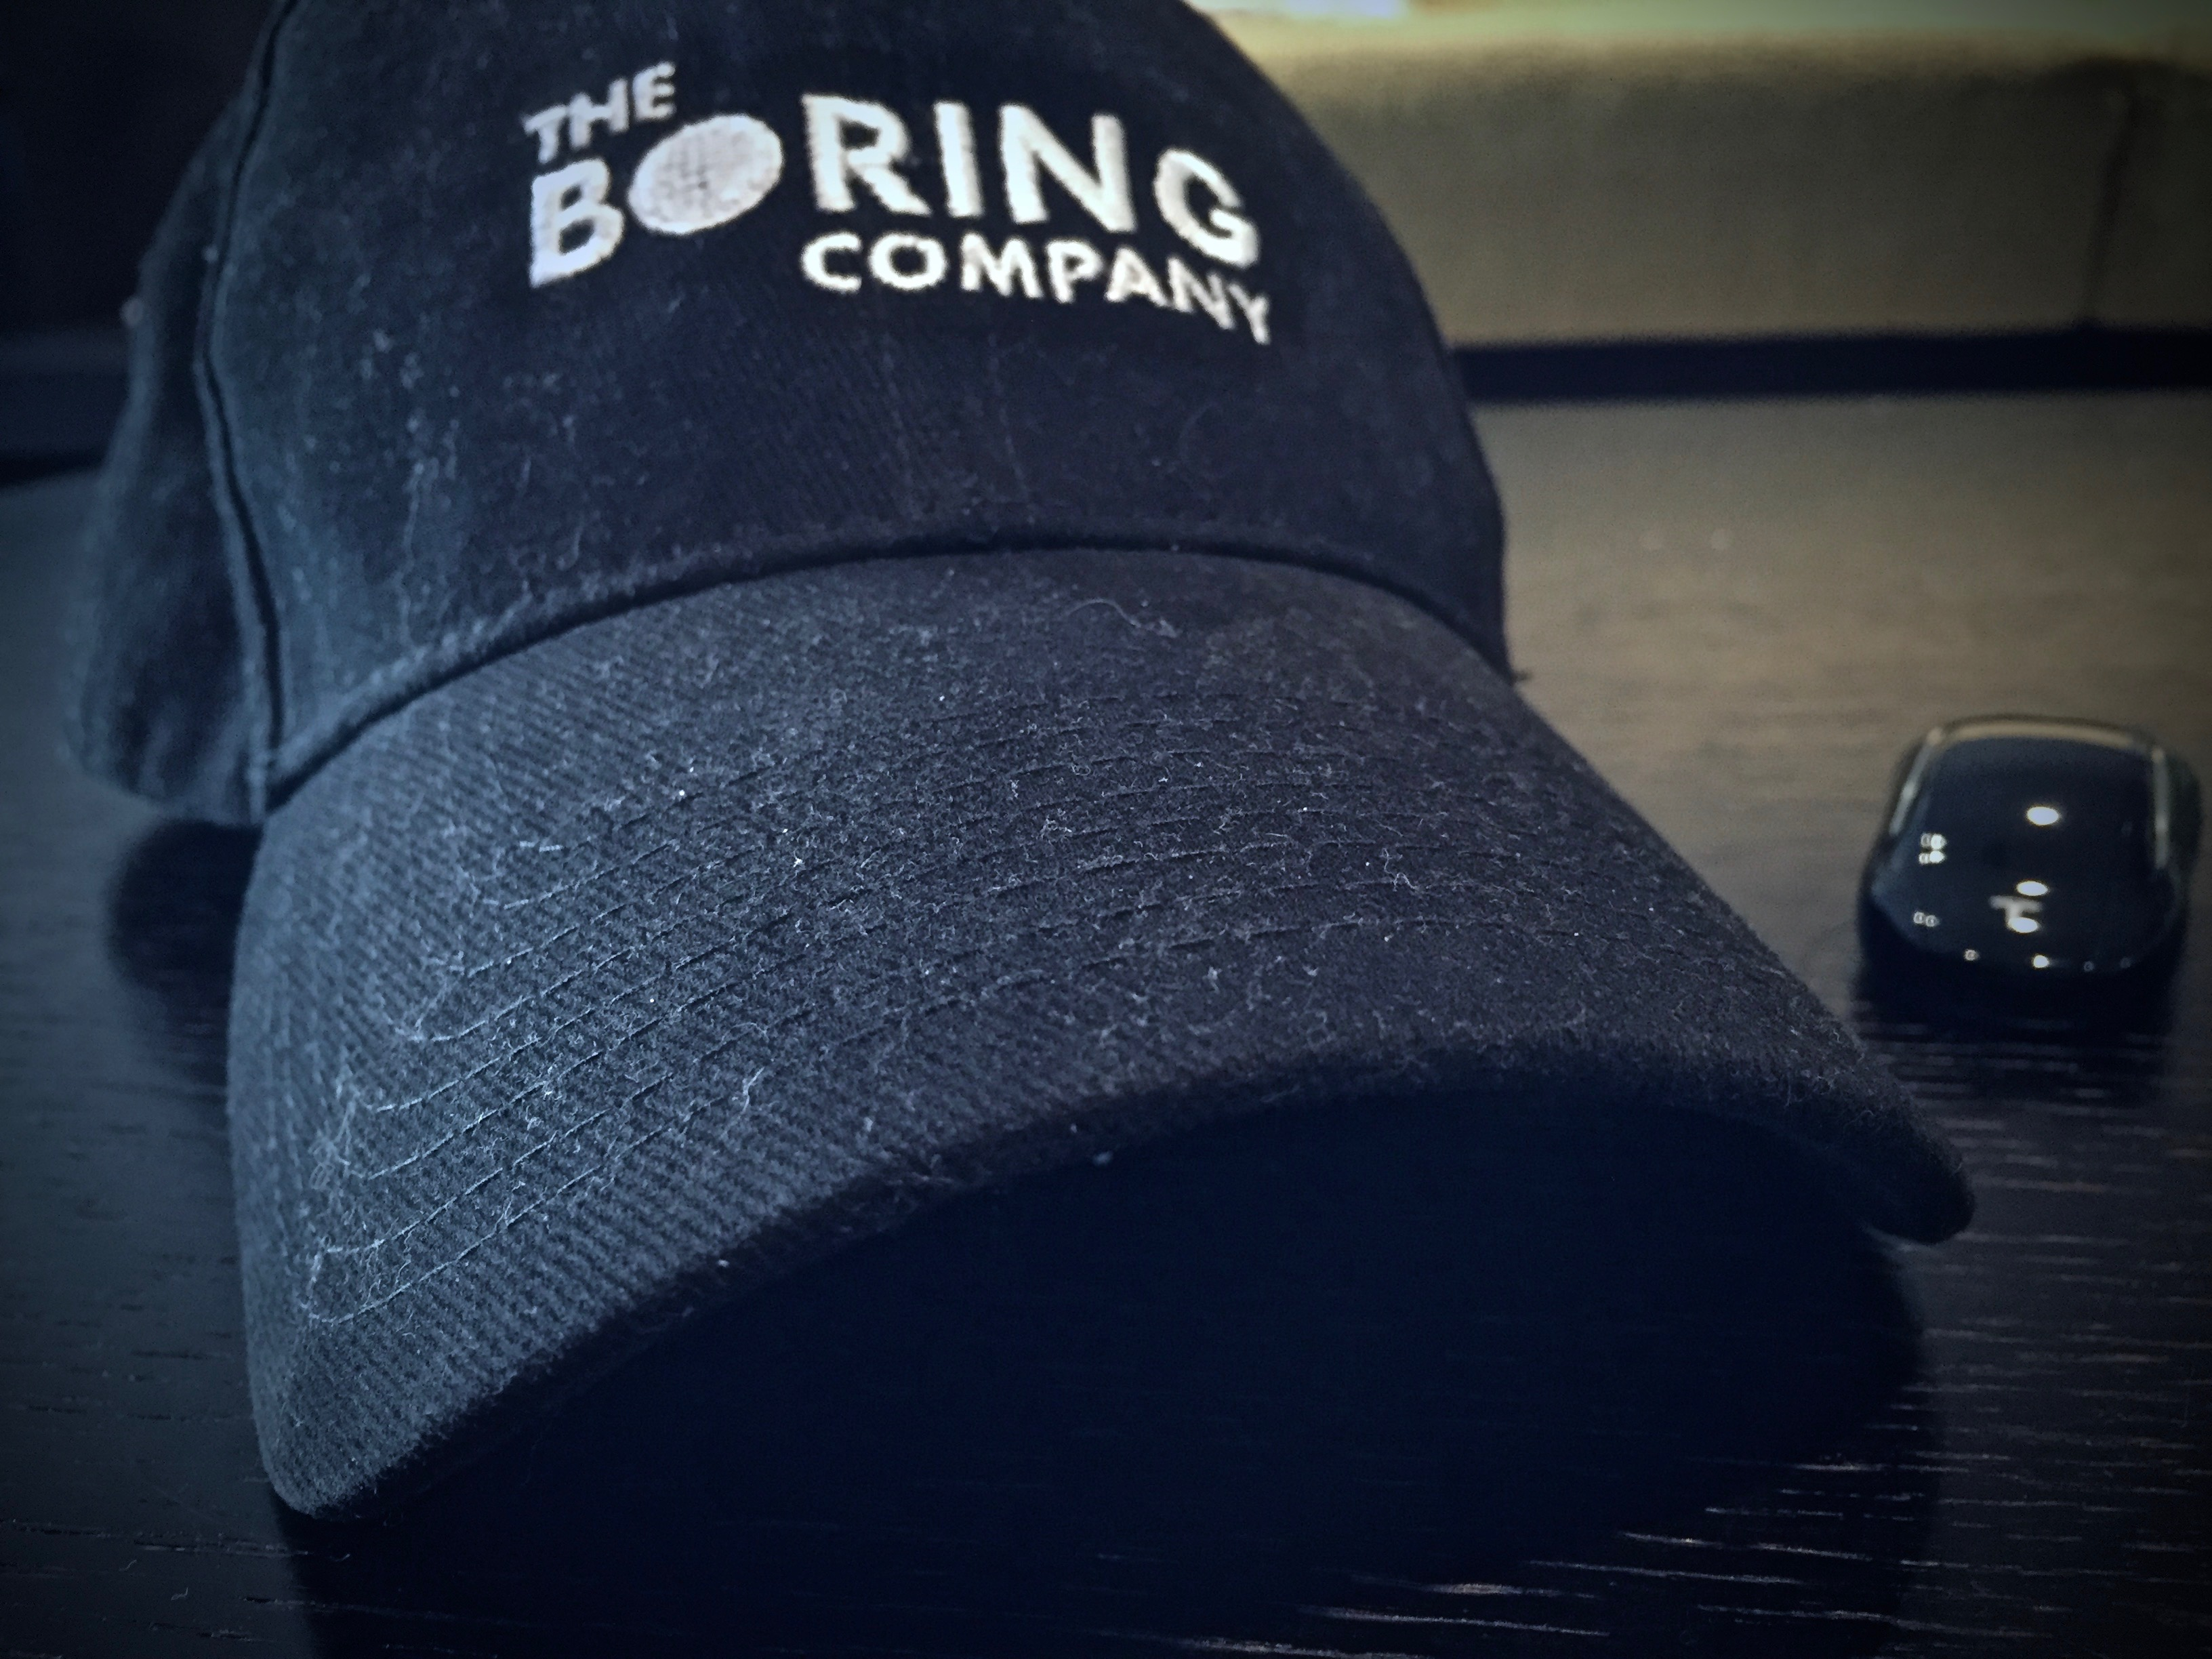 Elon Musk s Boring Co. hat just became a limited edition f3787a700bd